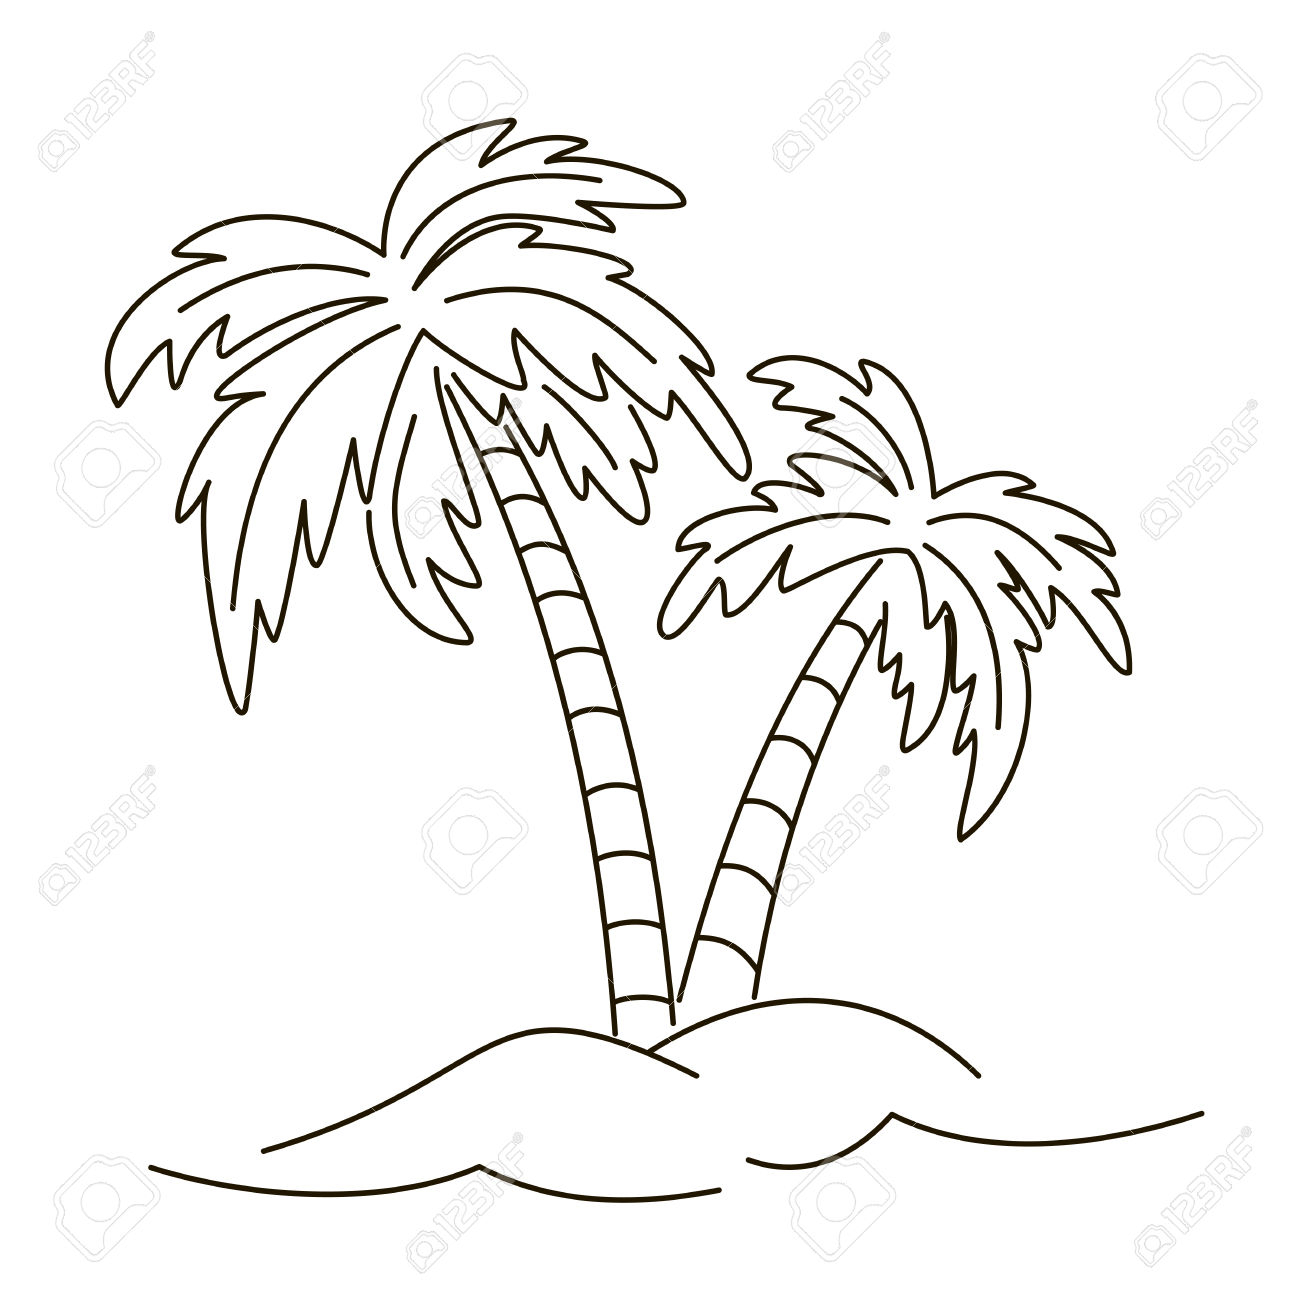 1300x1300 Palm Tree Drawing Outline Palm Trees, Outline Contours On White